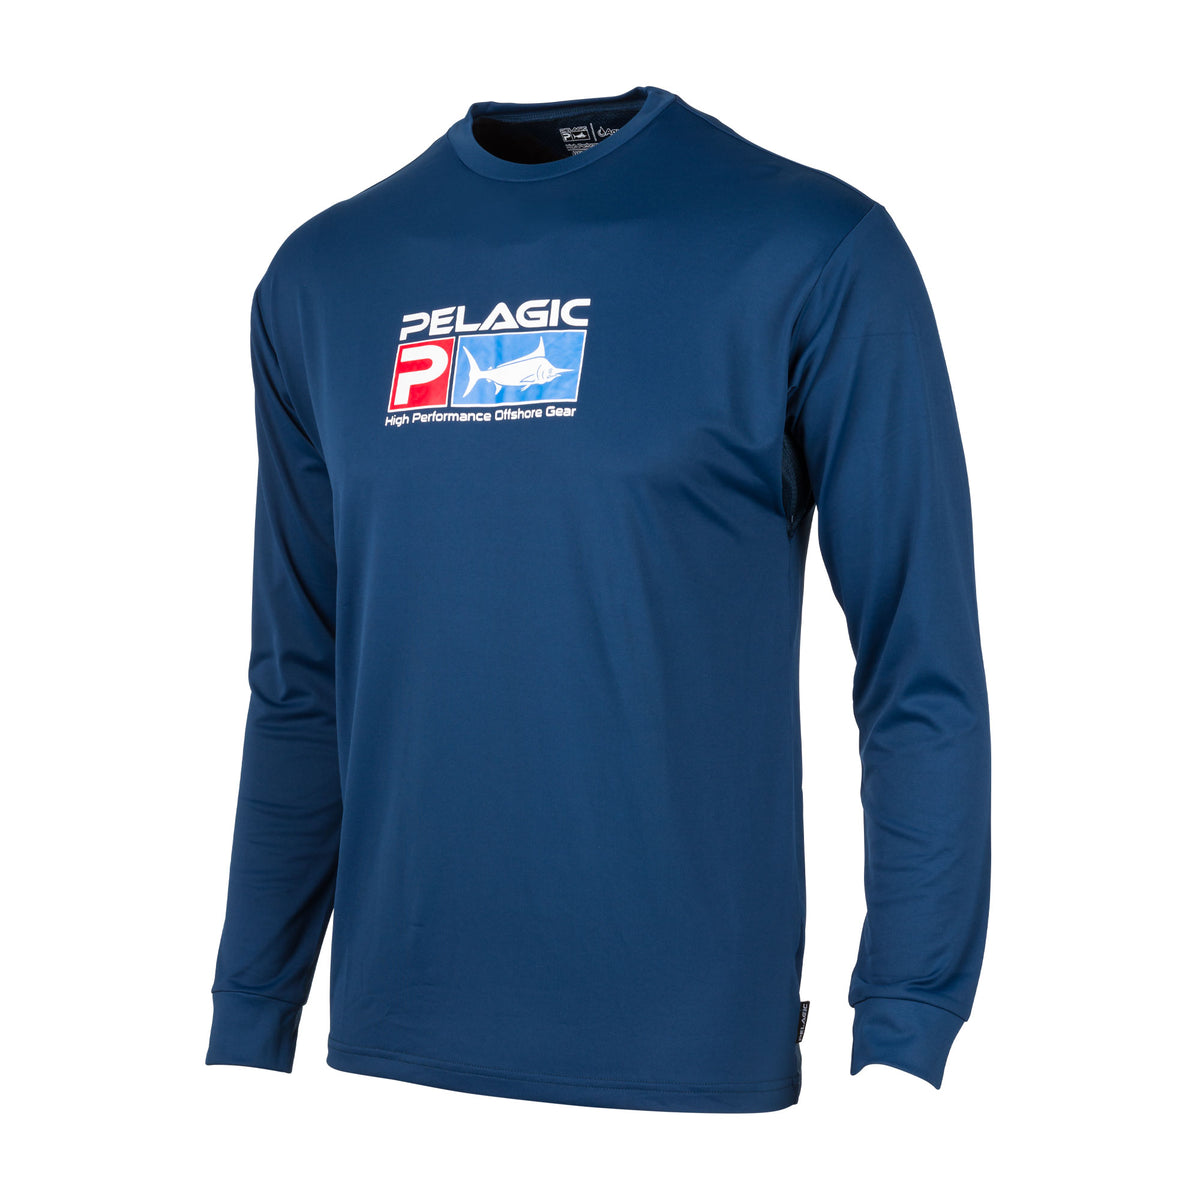 Aquatek Long Sleeve Fishing Shirt - Youth Big Image - 1